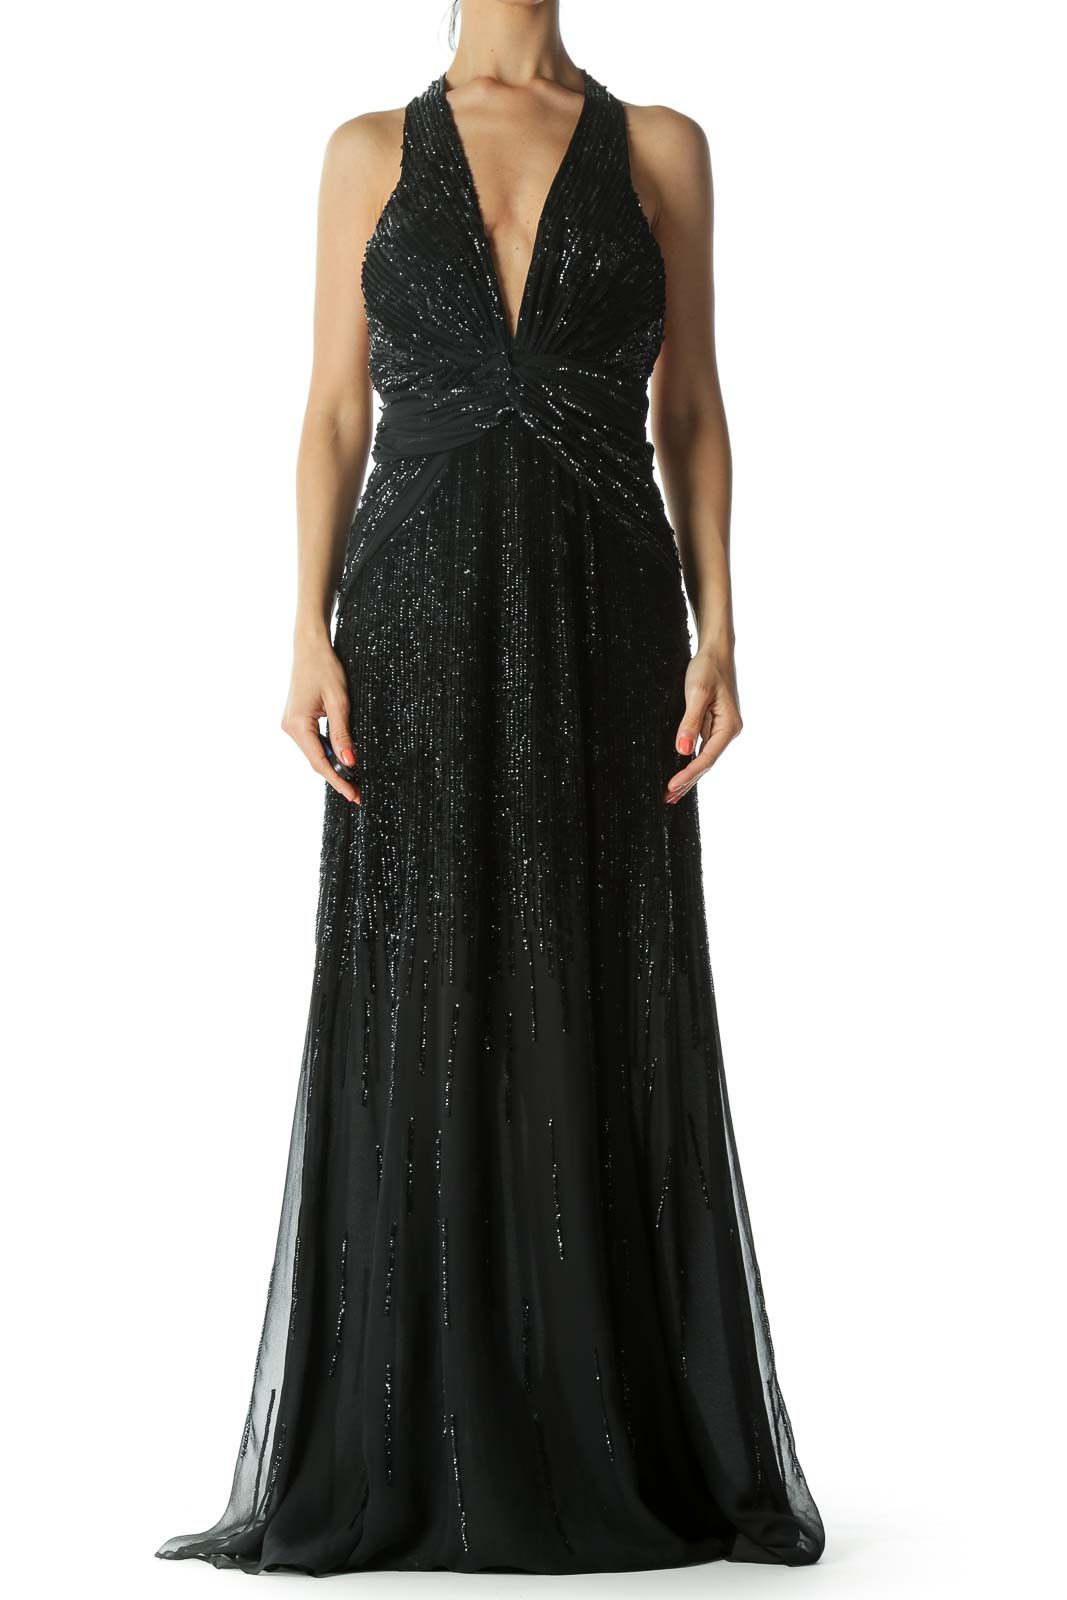 Black 100% Silk Sequined Halter-Neckline Front-Knot-Detail Evening Dress